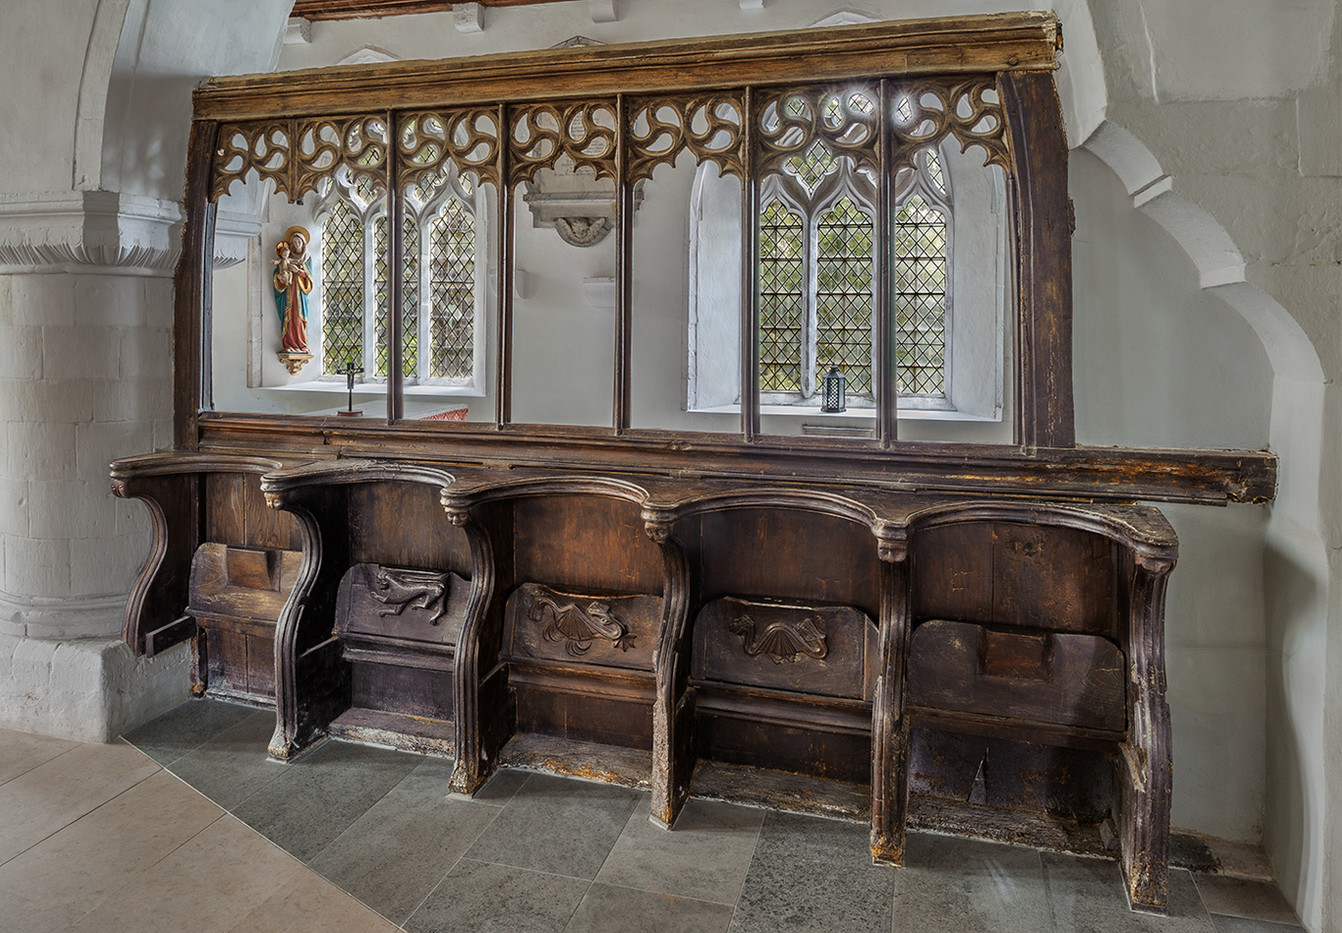 18 CHOIR STALLS ALL SAINTS CHURCH ULCOMBE KENT by Chris Rigby